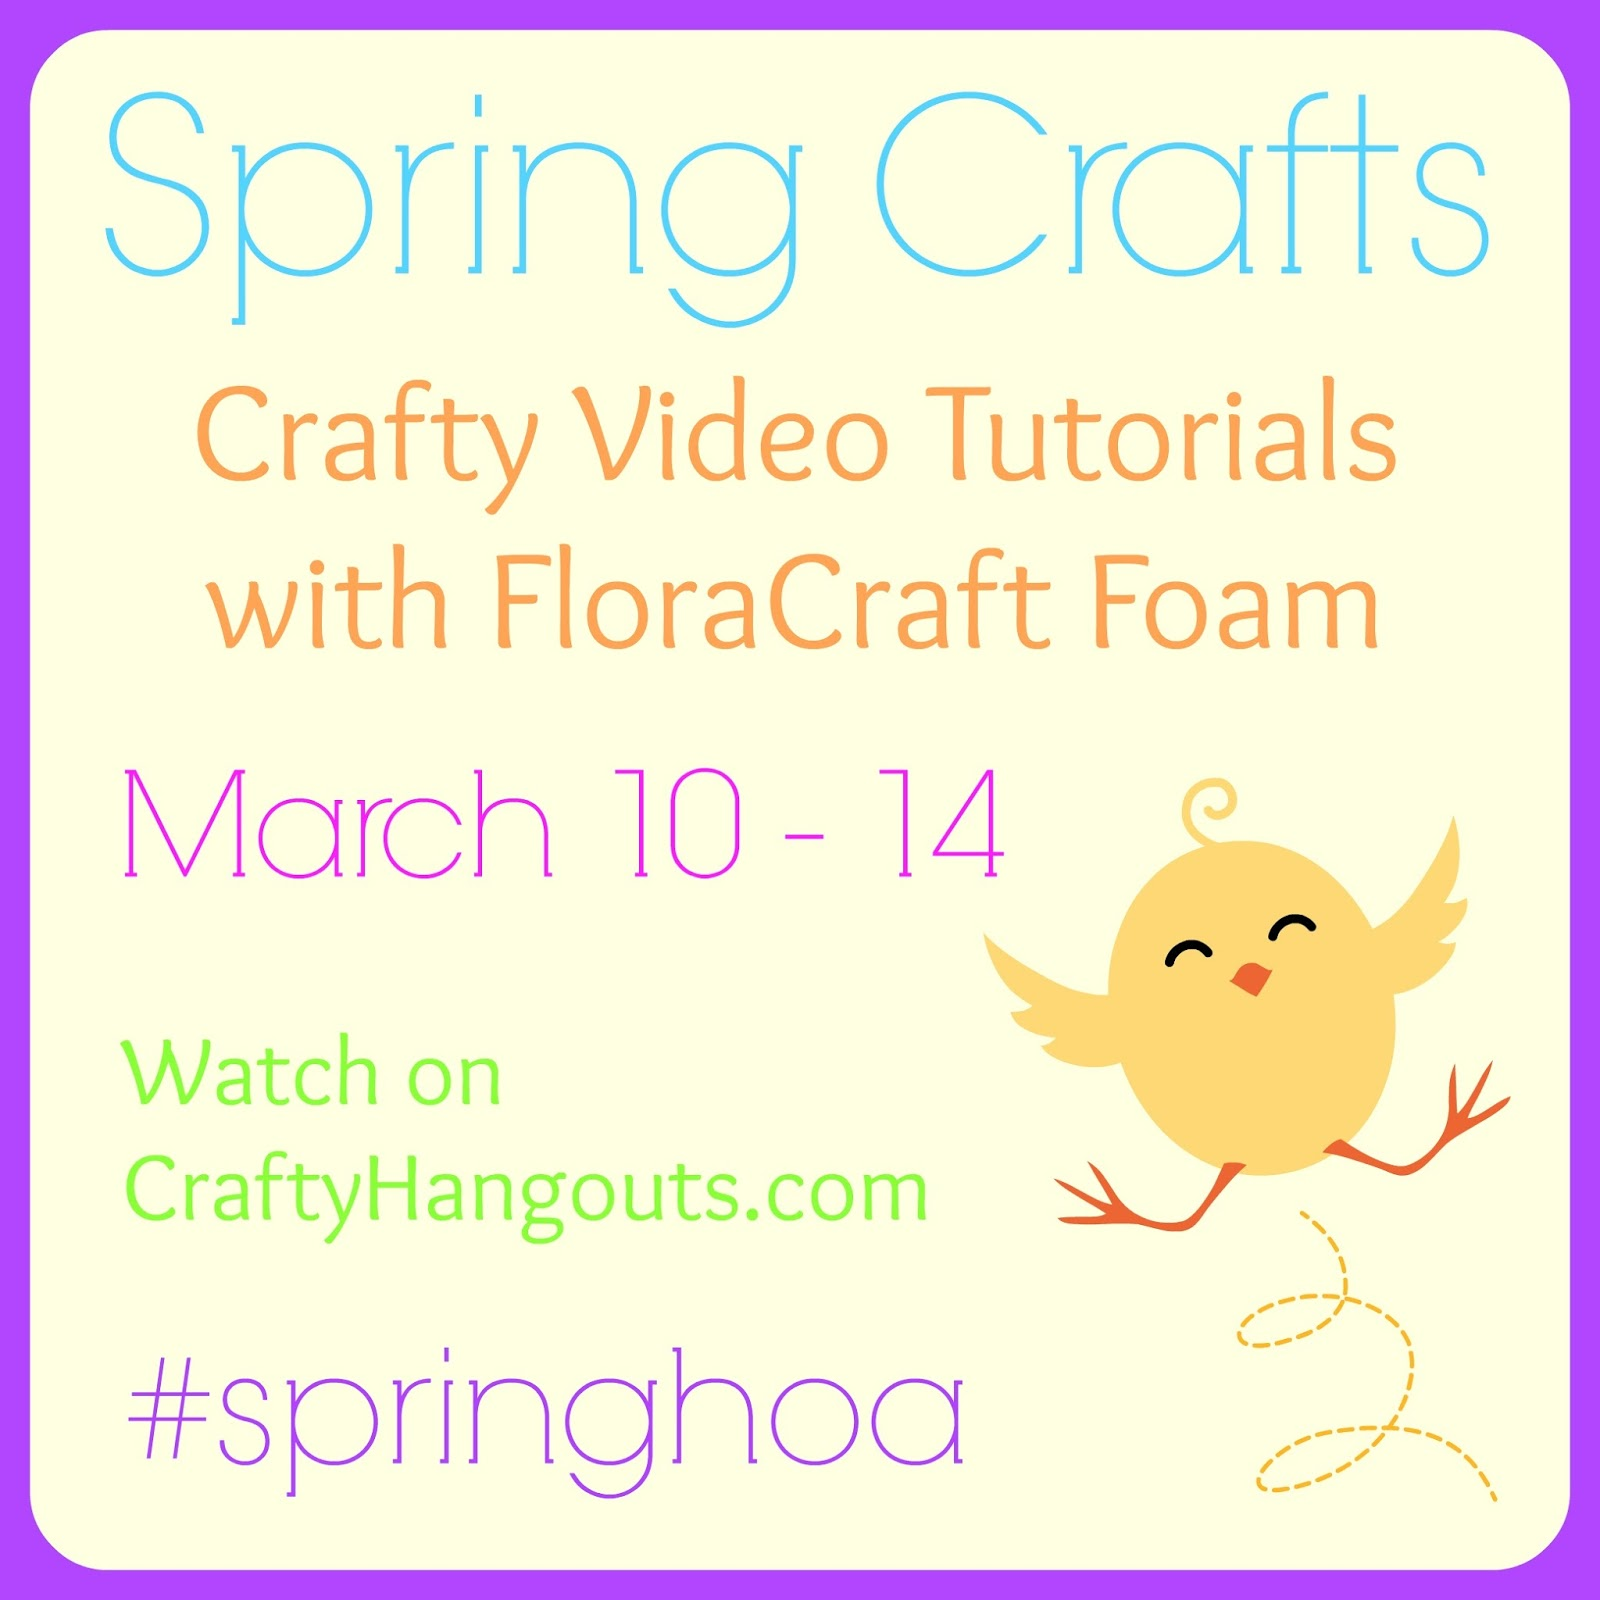 Crafty Hangouts featuring Spring Crafts using FloraCraft Foam!